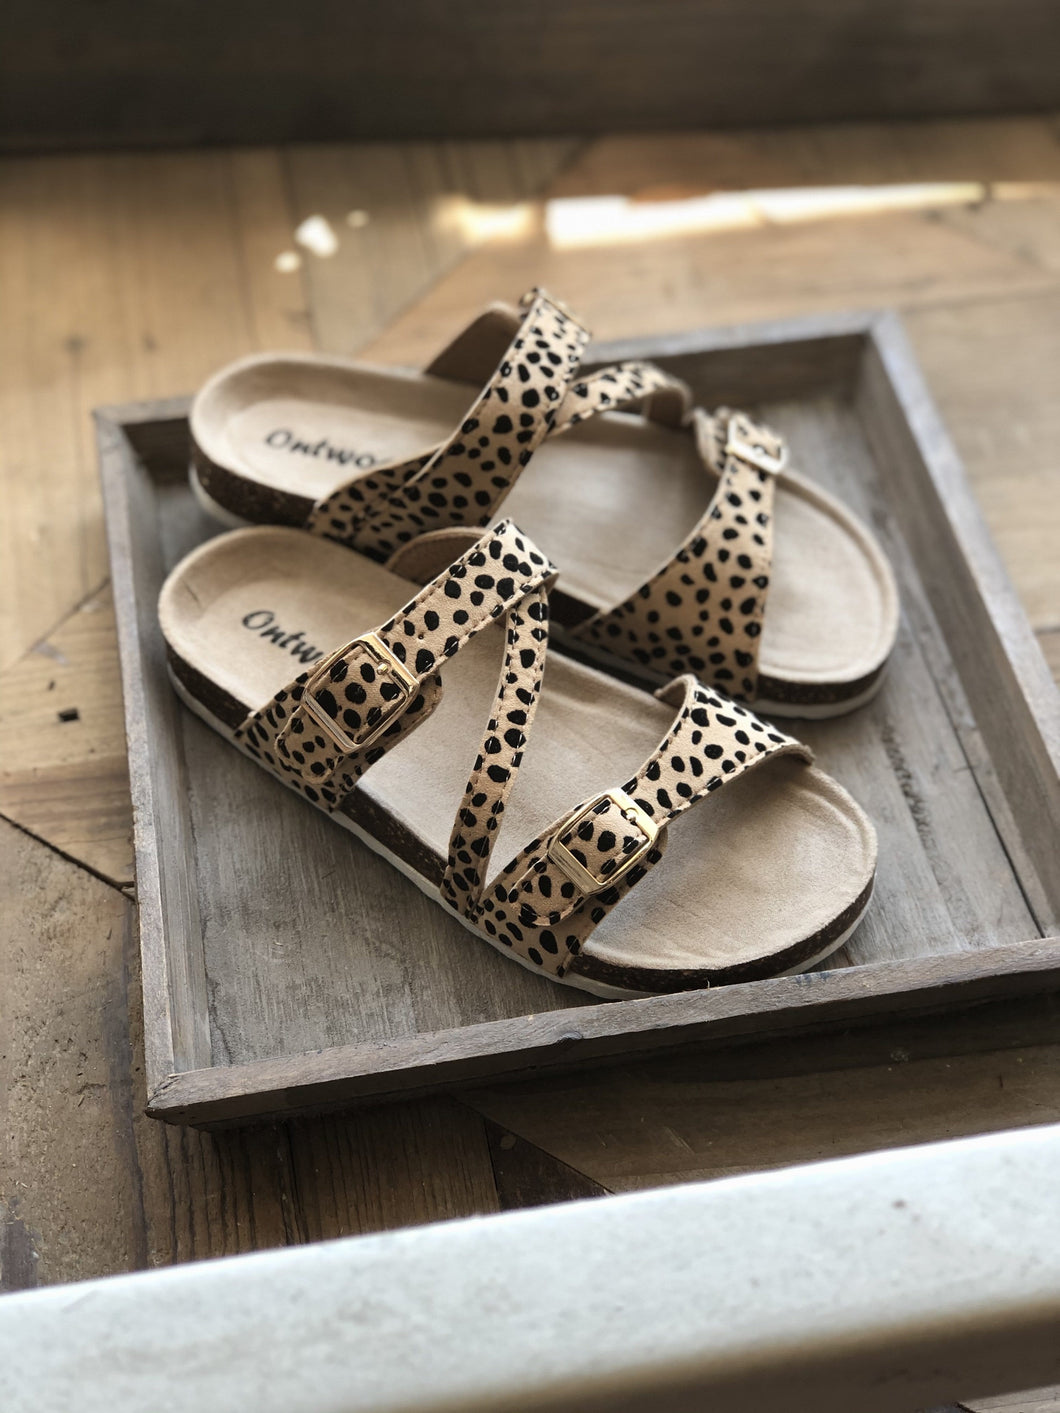 KNOW THE WAY TO YOU CHEETAH PRINT SANDALS - Infinity Raine